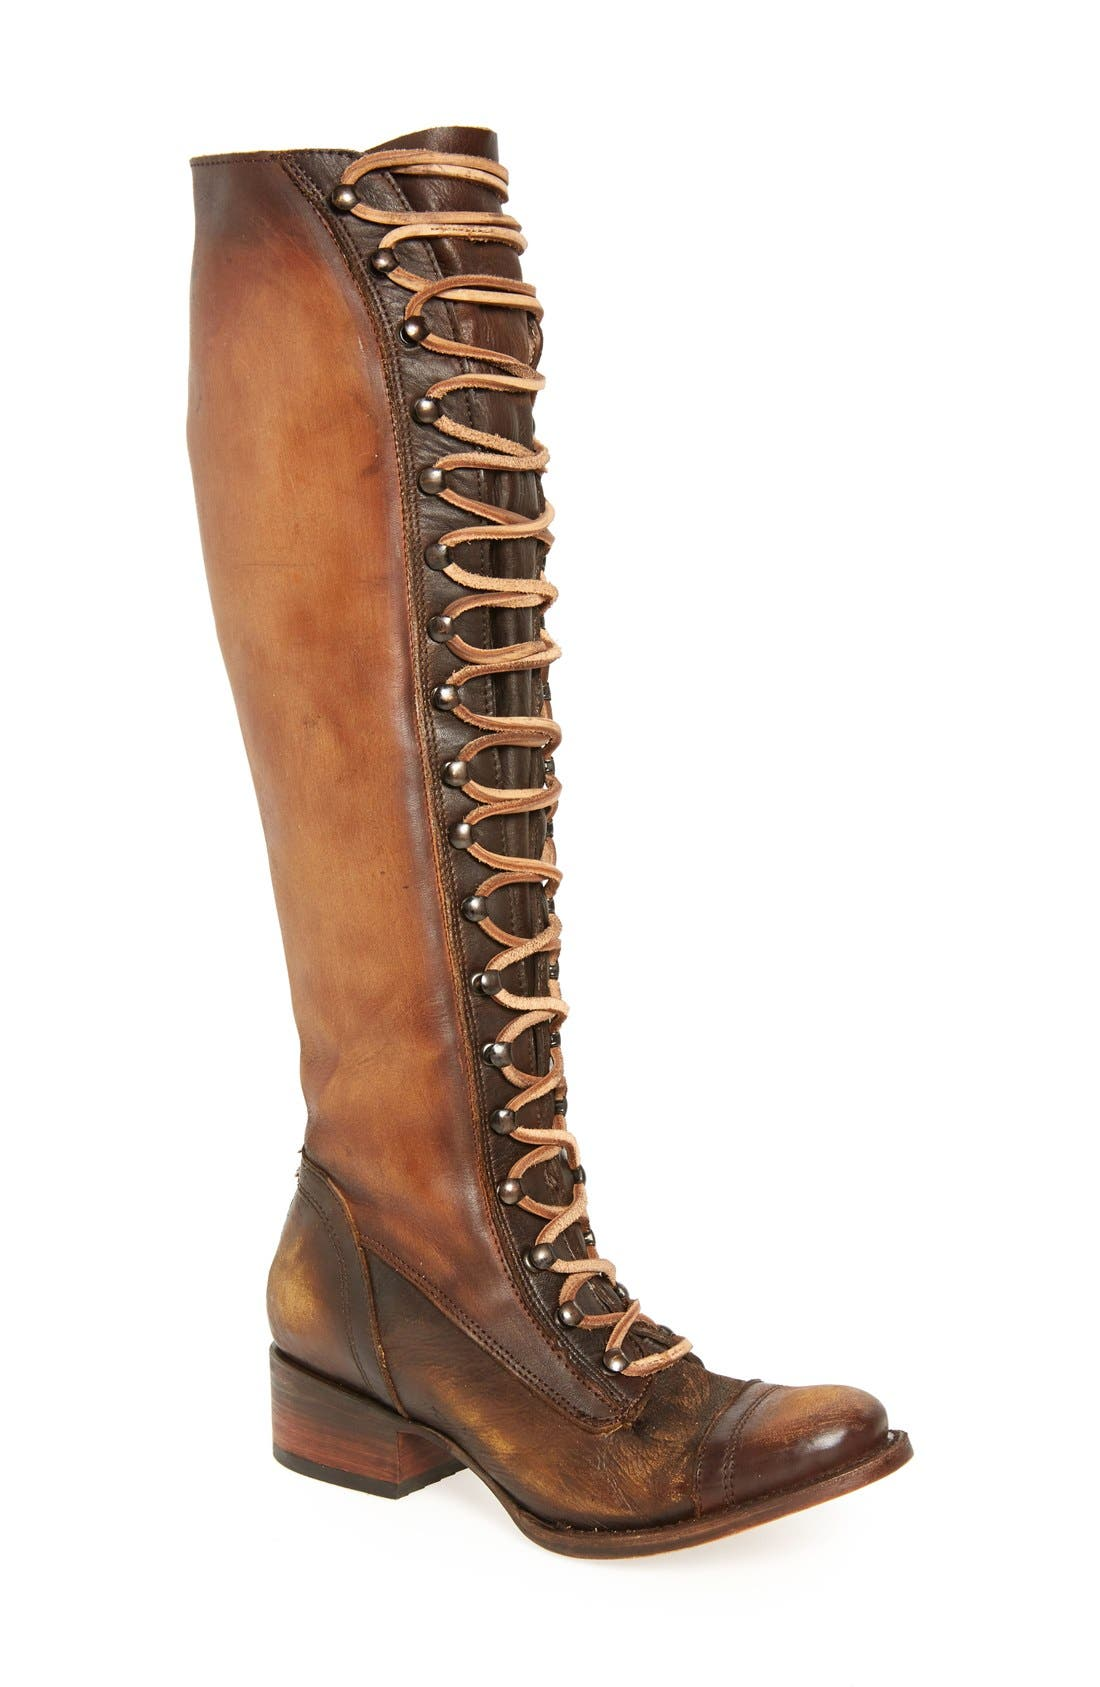 Alternate Image 1 Selected - Freebird by Steven Arlo Lace-Up Knee High Boot (Women)